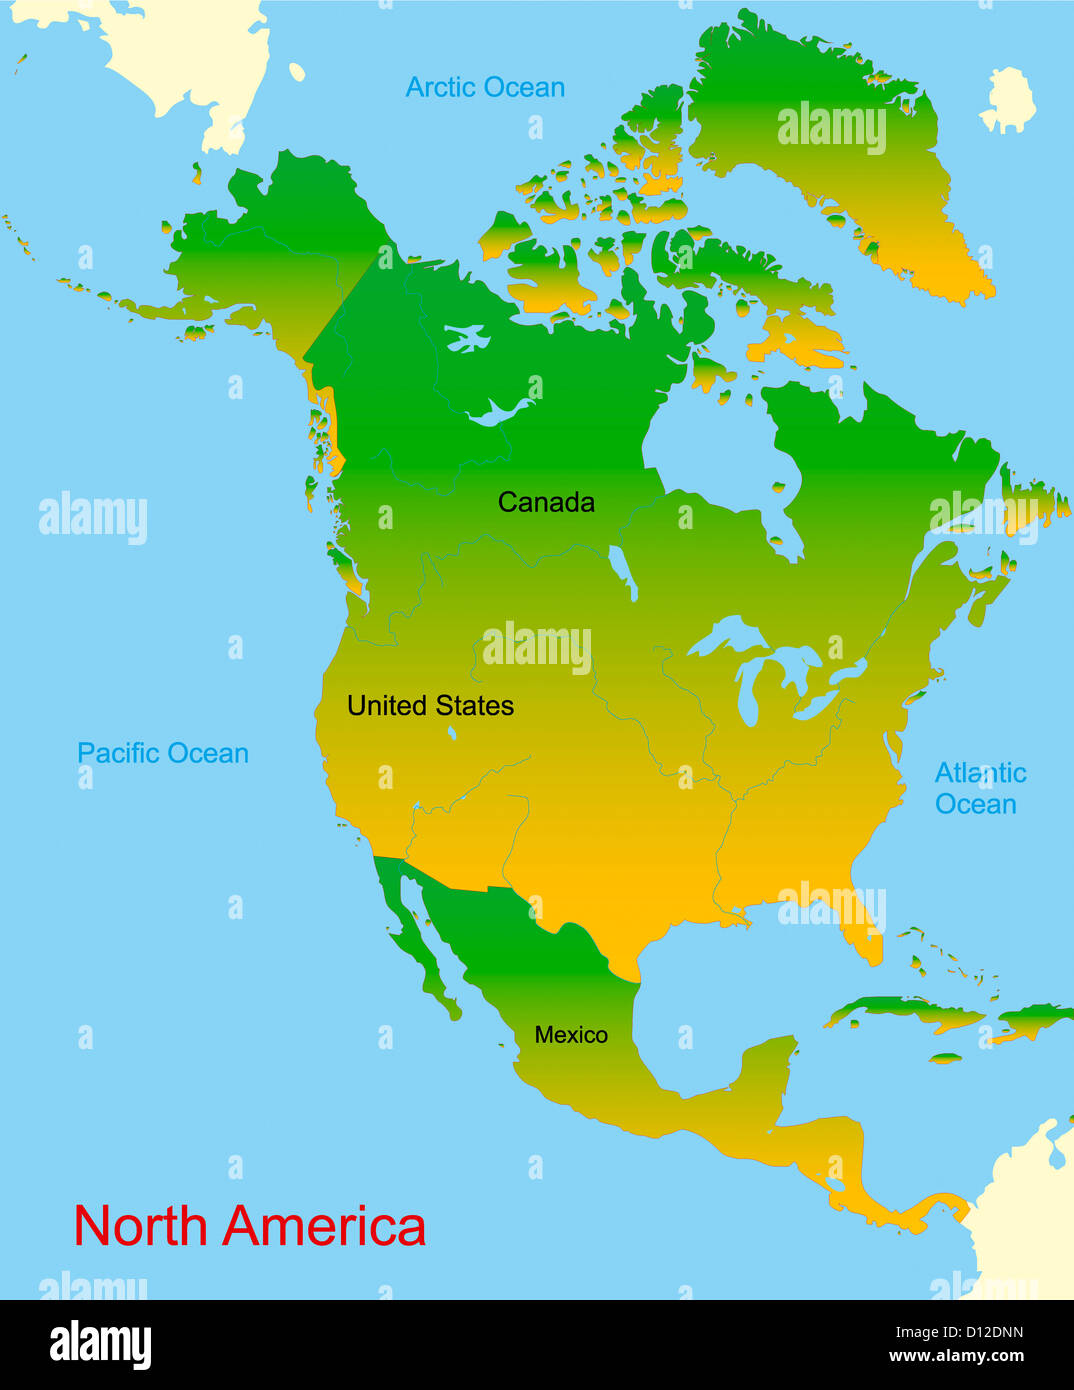 map of north america continent Stock Photo: 52300465 - Alamy Map Of American Continent on atlantic ocean, map of chile, voyages of christopher columbus, map of electromagnetic spectrum, map of america, map of american tribe, map of mexico, western hemisphere, map of american country, map of american states, map of ecuador, map of new madrid fault zone, central america continent, pacific ocean, native americans in the united states, christopher columbus, map of american culture, map of american colony, map of colombia, map of florida, map of american race, map of american history, united states of america, indigenous peoples of the americas, south america continent, map of american english, history of the americas, map of american plateau, map of europe,